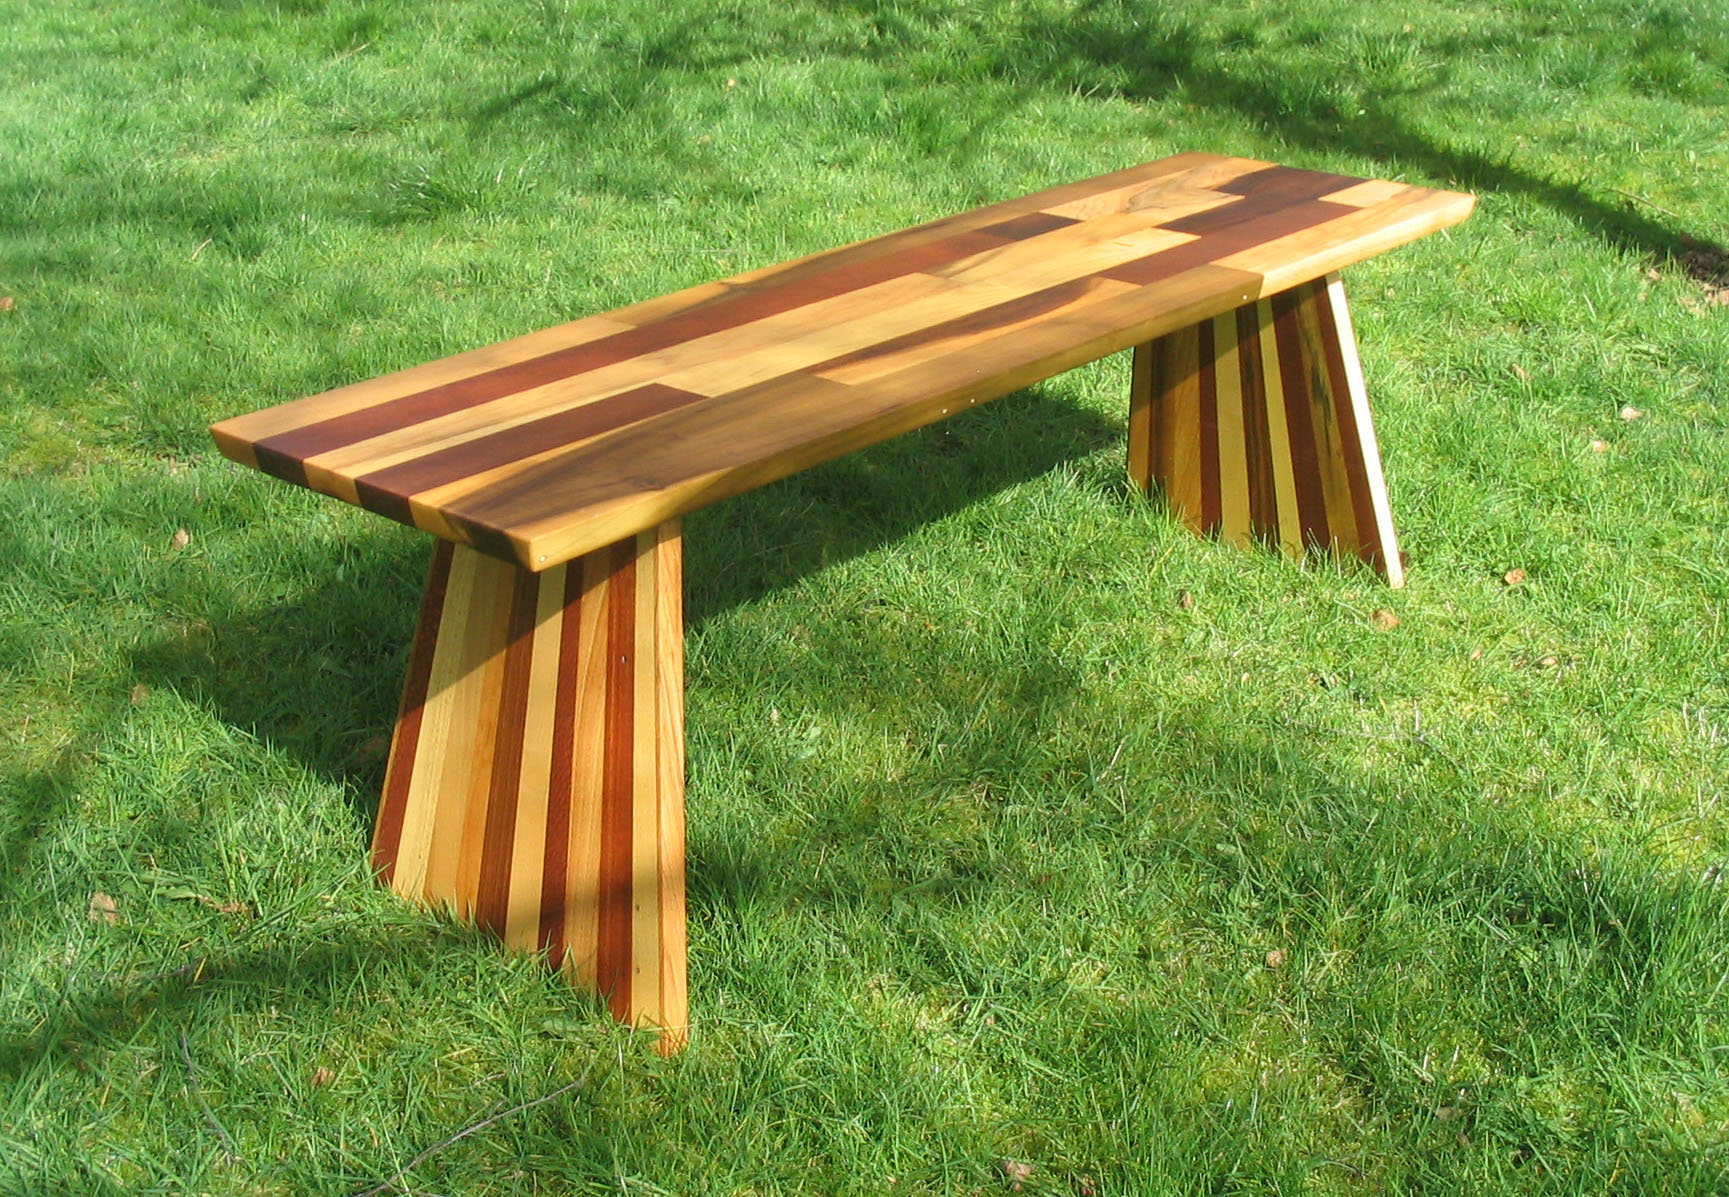 Bellbottom Scrap Bench